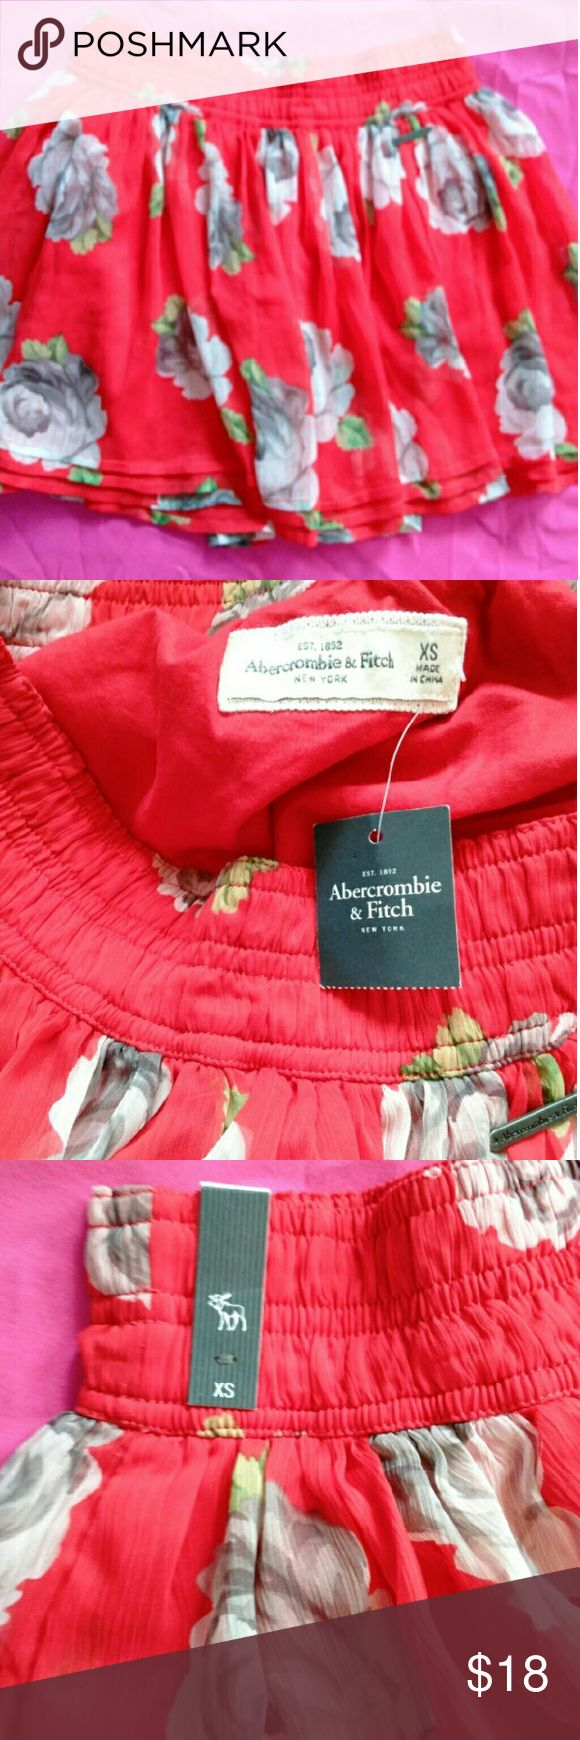 Abercrombie & Fitch skirt, NWT New with tags, Abercrombie & Fitch red skirt with flowers, size XS. Very cute skirt. Abercrombie & Fitch Skirts Mini